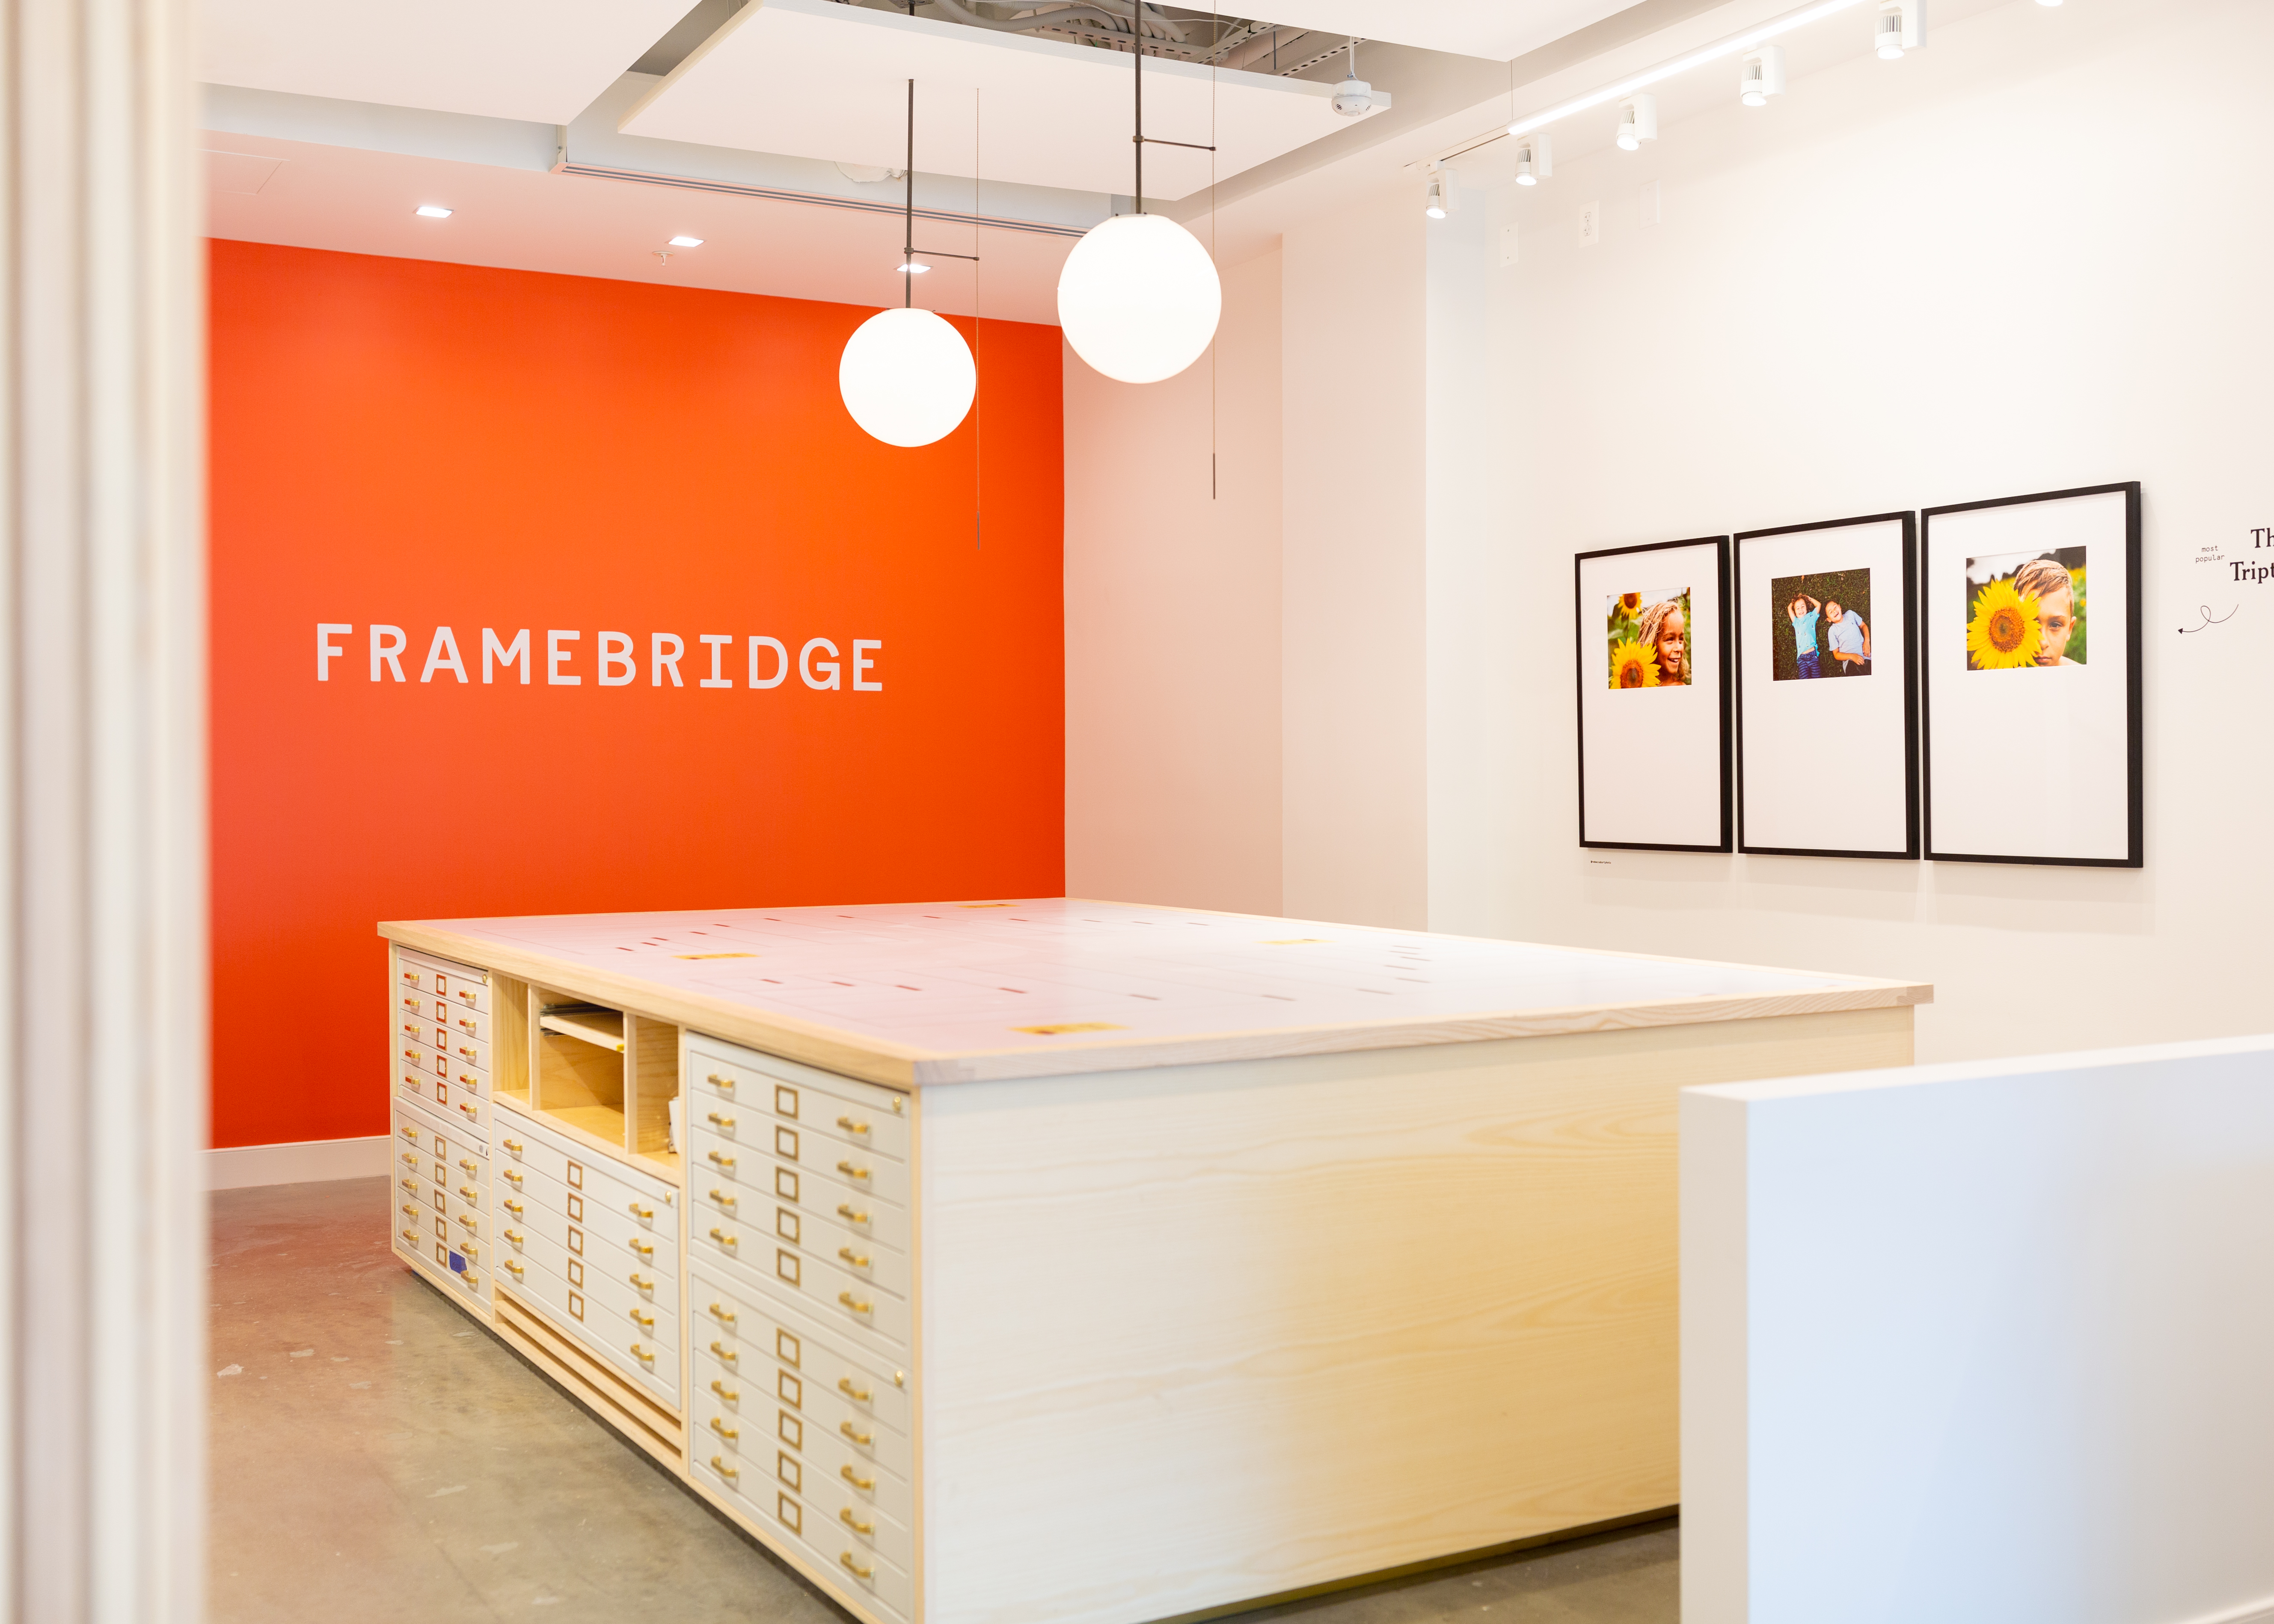 Framebridge, founded in 2014, has opened a 1,400-square-foot store on 14th Street. (Image: Courtesy Framebridge)